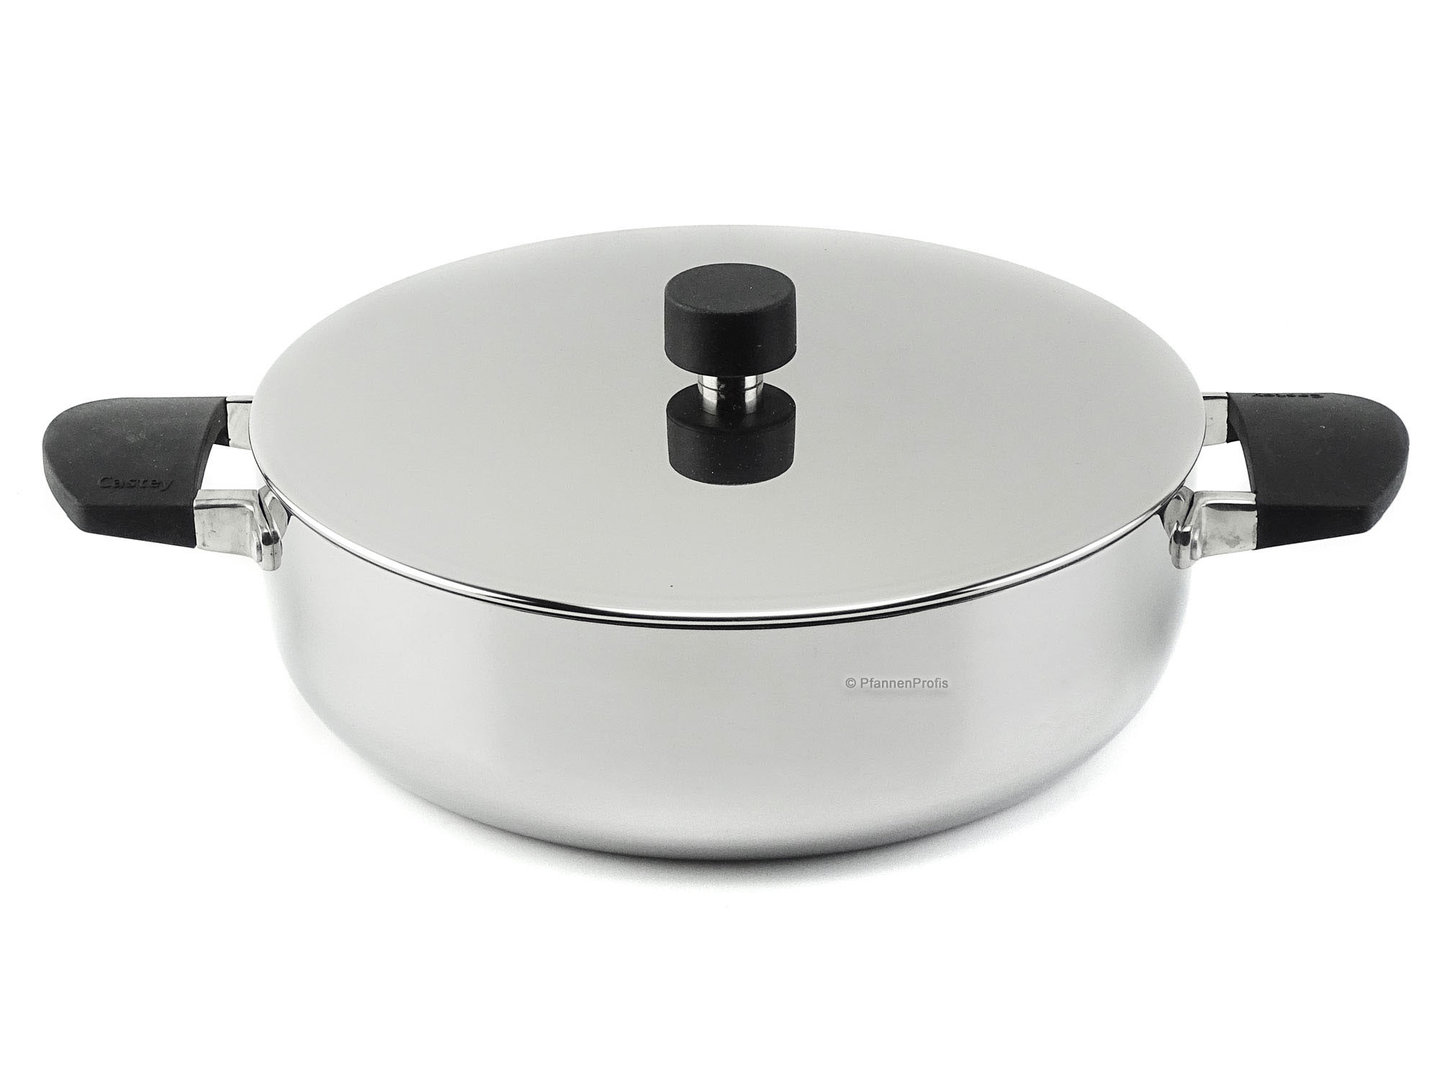 CASTEY 3-ply stainless steel shallow casserole BALTIC 28 cm uncoated with lid